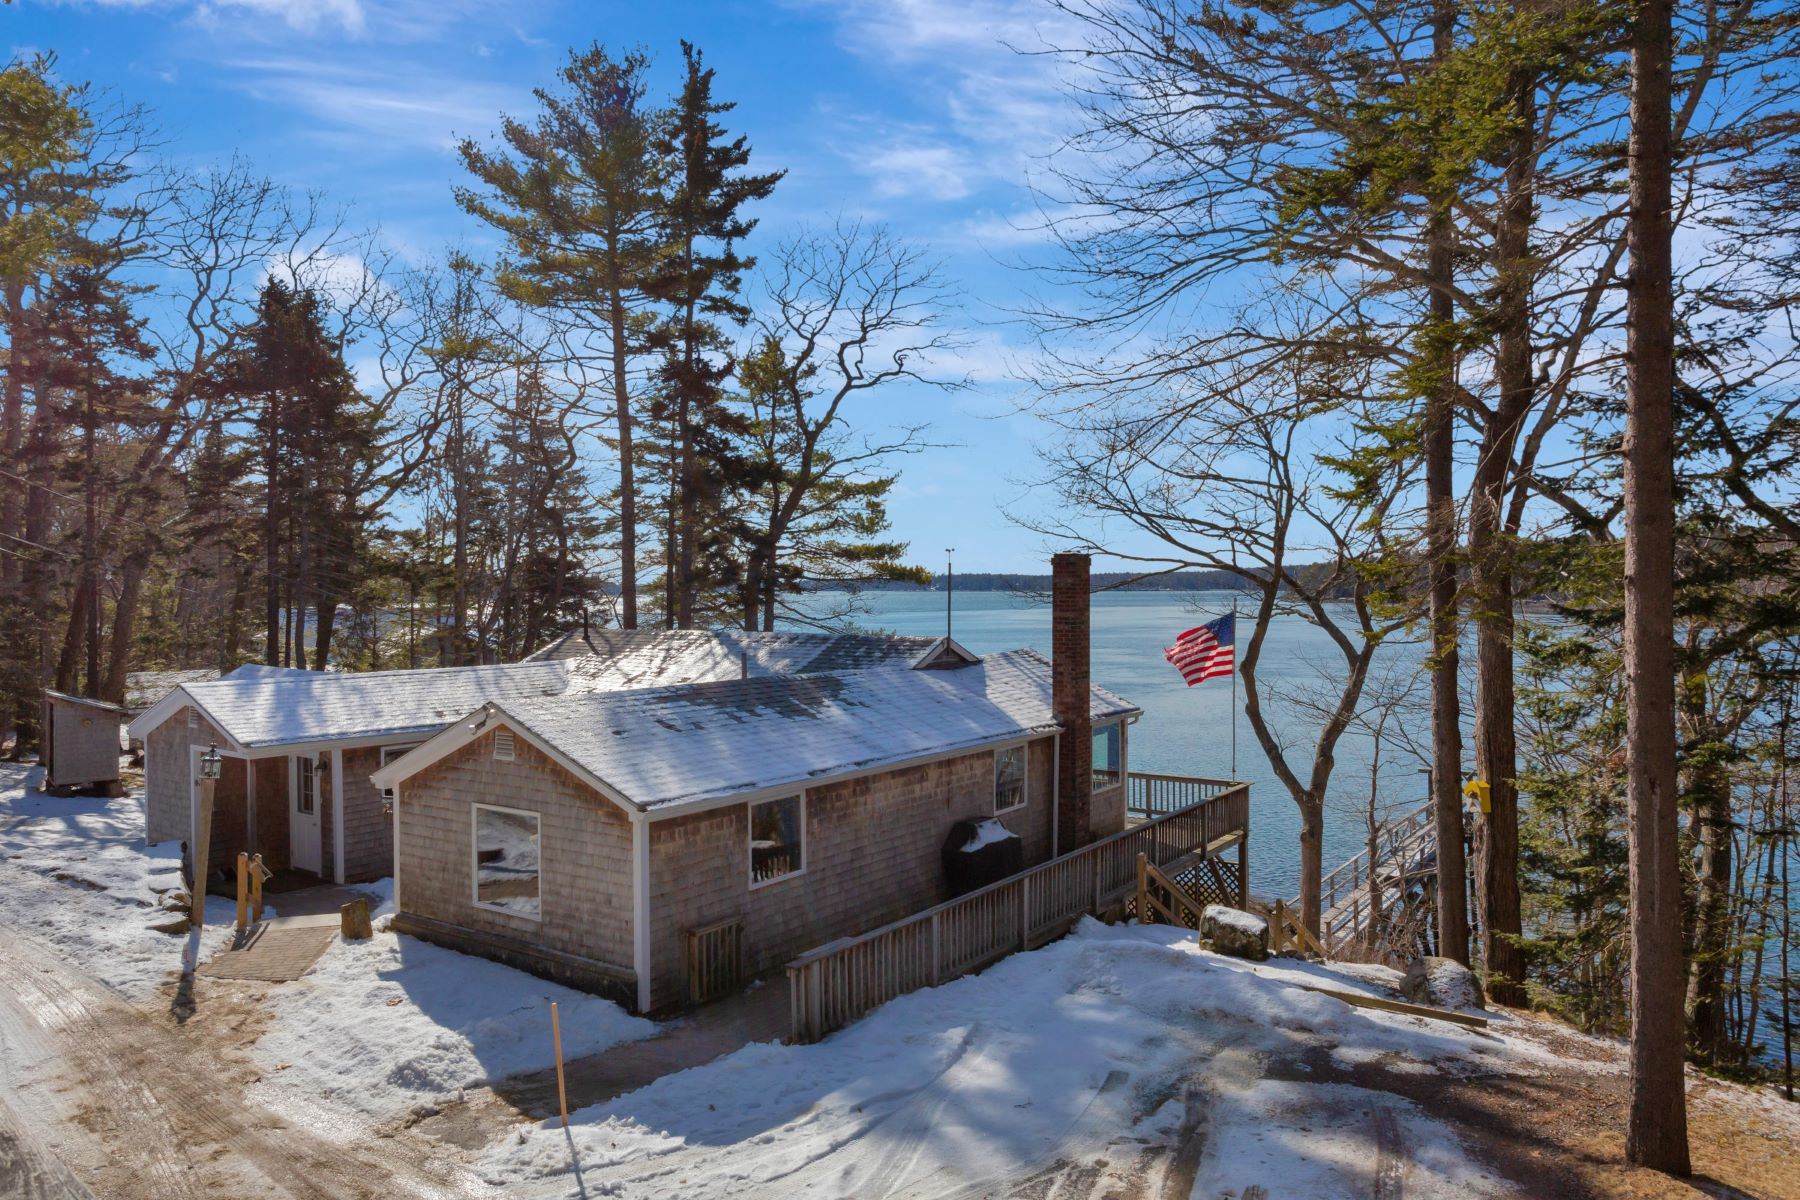 Single Family Homes for Active at 964 Cross Point Road Edgecomb, Maine 04556 United States